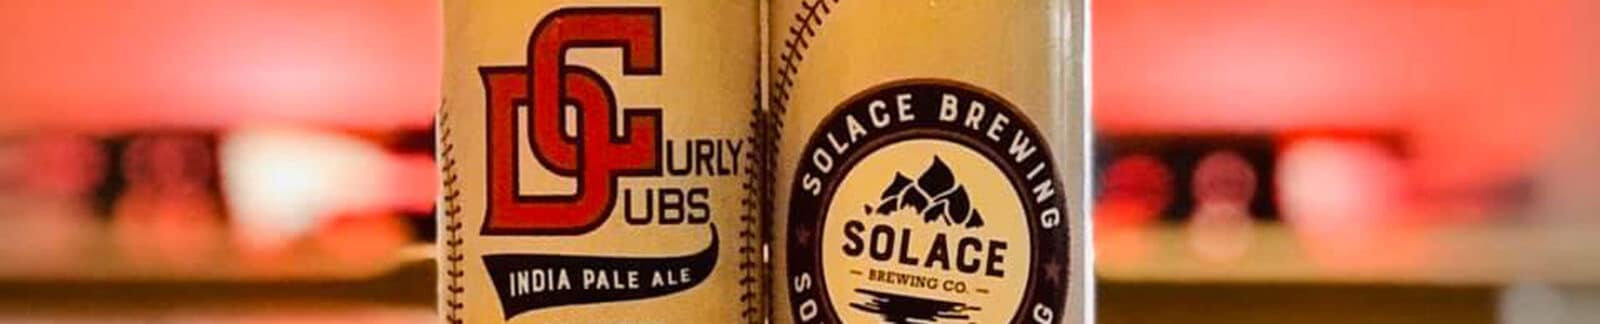 Curly Dubs IPA from Solace Brewing header